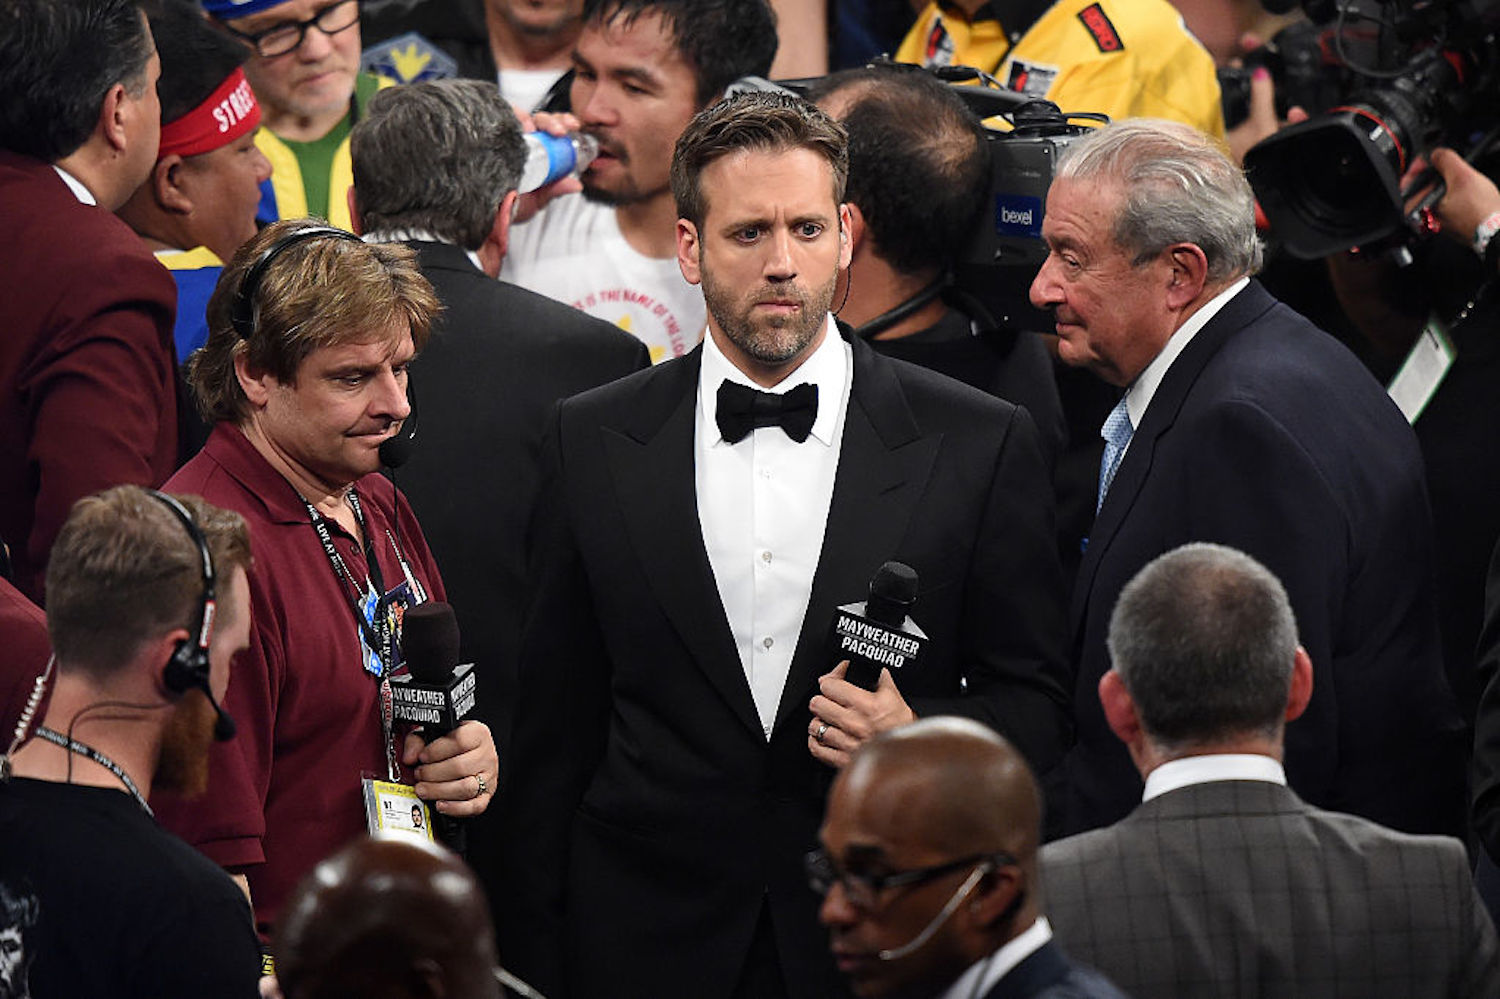 ESPN's Max Kellerman called Tom Brady a 'bum' and said he would 'fall off a cliff' in 2016, and his day of reckoning finally came this week.